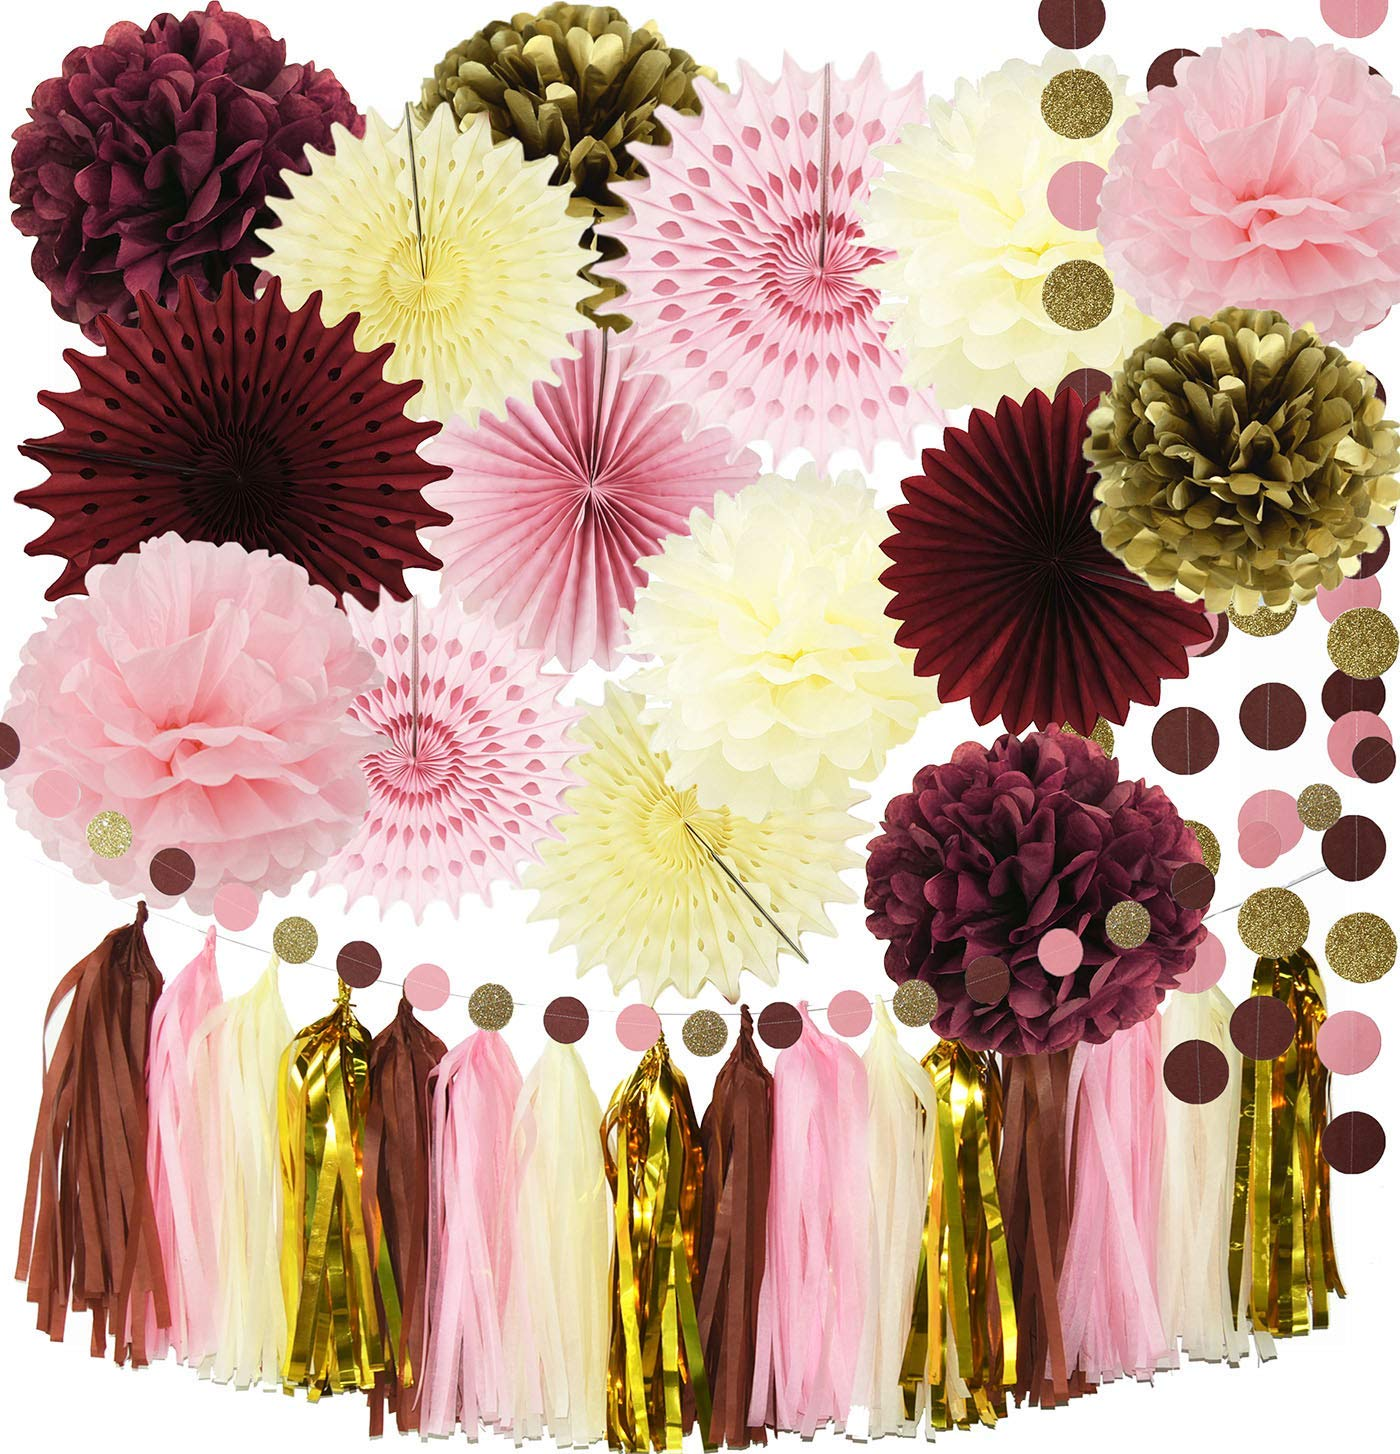 Bridal Shower Decorations Qian's Party Maroon Party Decorations Burgundy Pink Glitter Gold Birthday Decorations Tissue Paper Pom Pom Tassel Garland Burgundy Wedding/Bachelorette Party Decorations